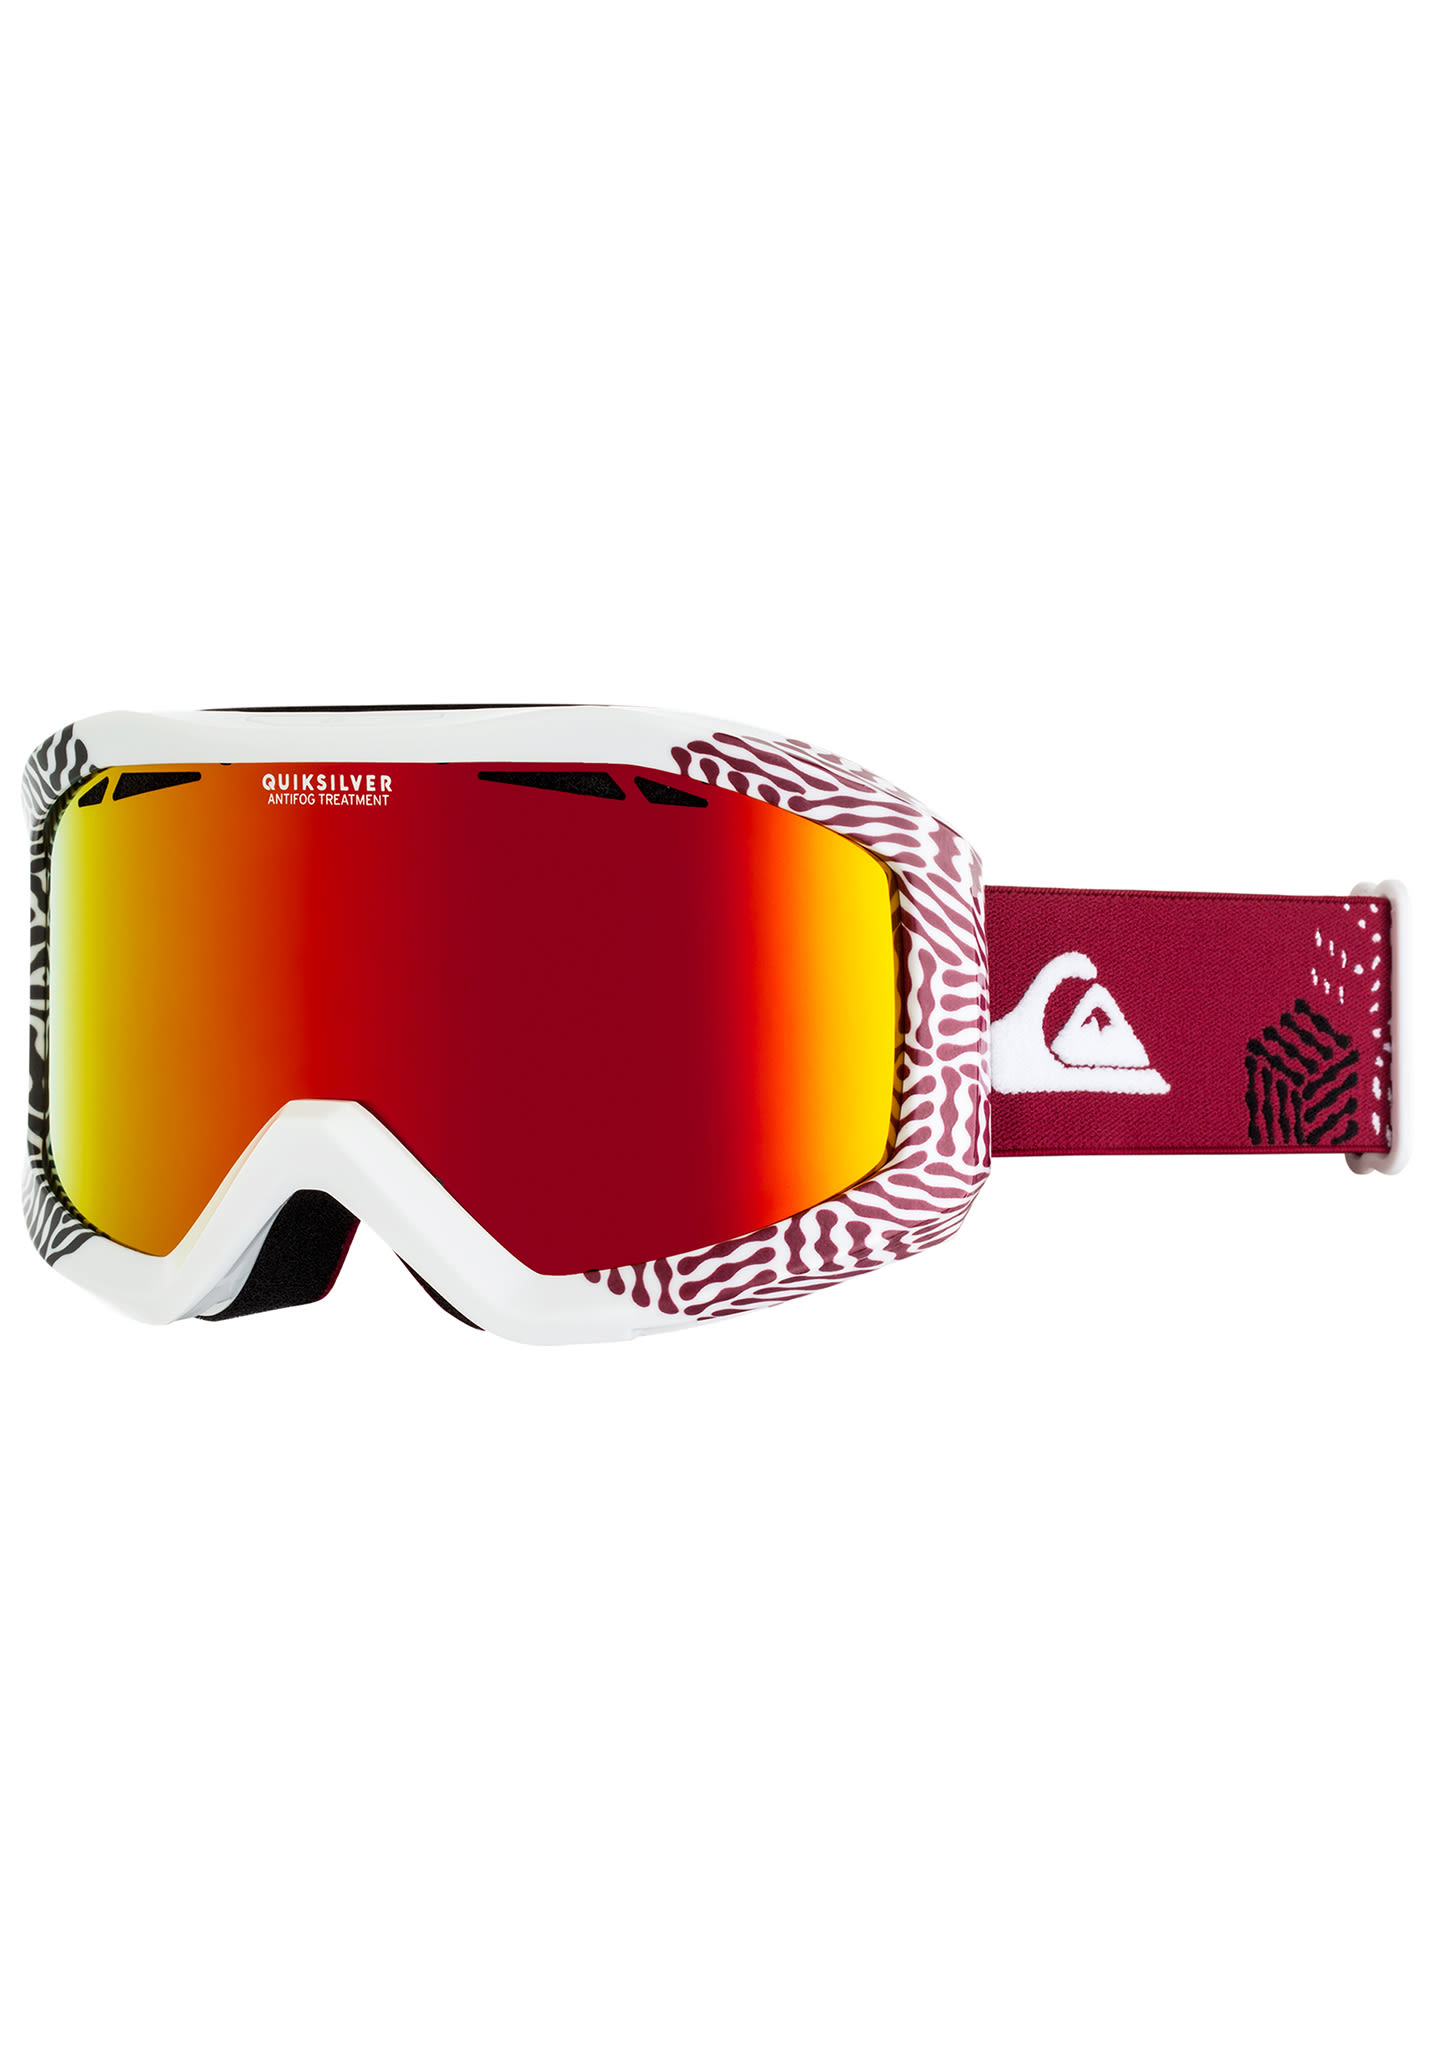 a55e32cba31 Quiksilver Fenom - Snowboard Goggle for Men - White - Planet Sports